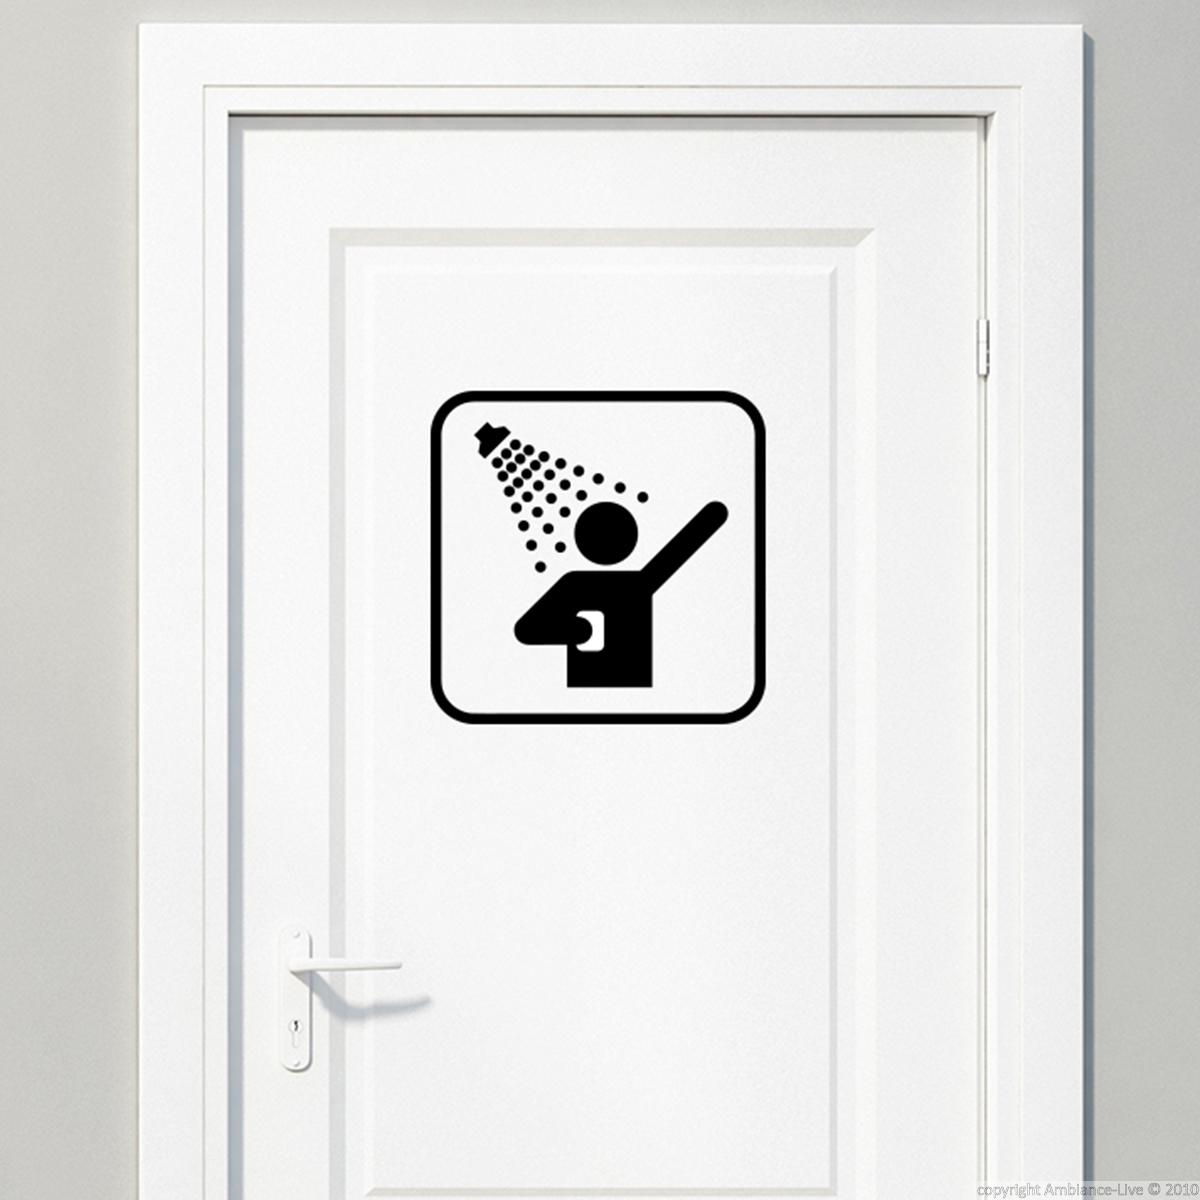 sticker porte panneau douche stickers salle de bain et wc ambiance sticker. Black Bedroom Furniture Sets. Home Design Ideas